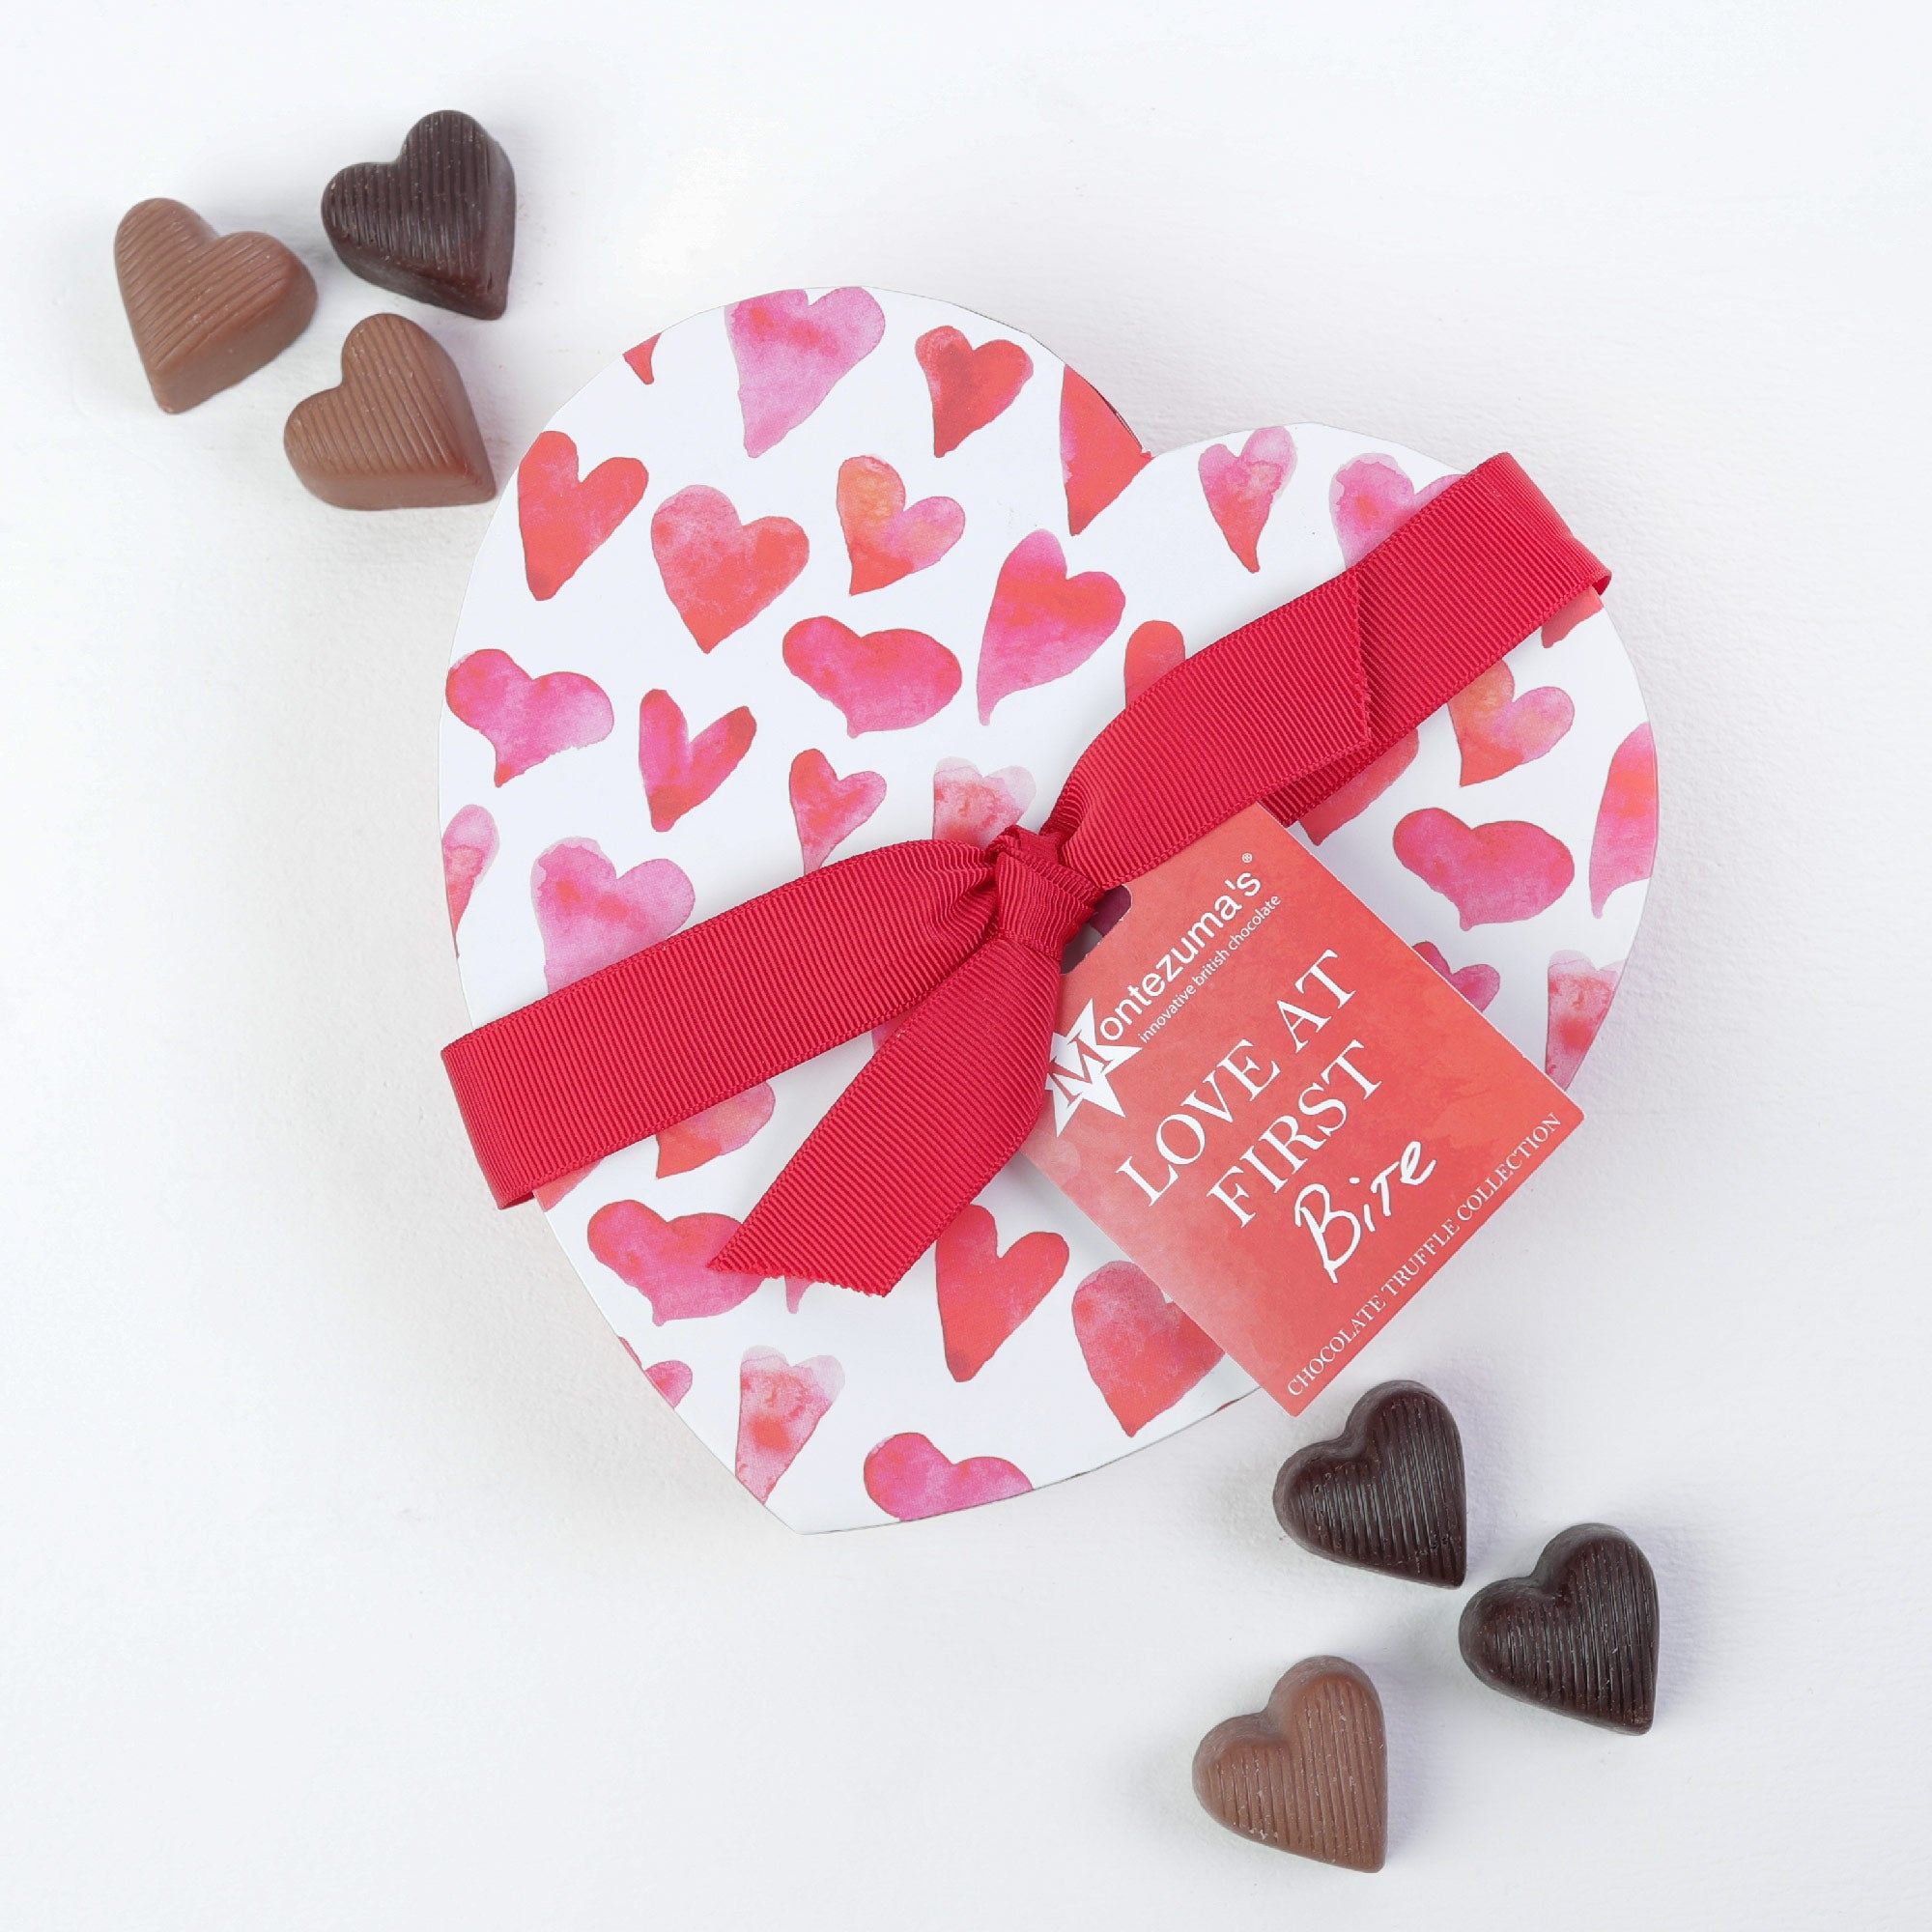 Montezuma 'Love at first bite' chocolates